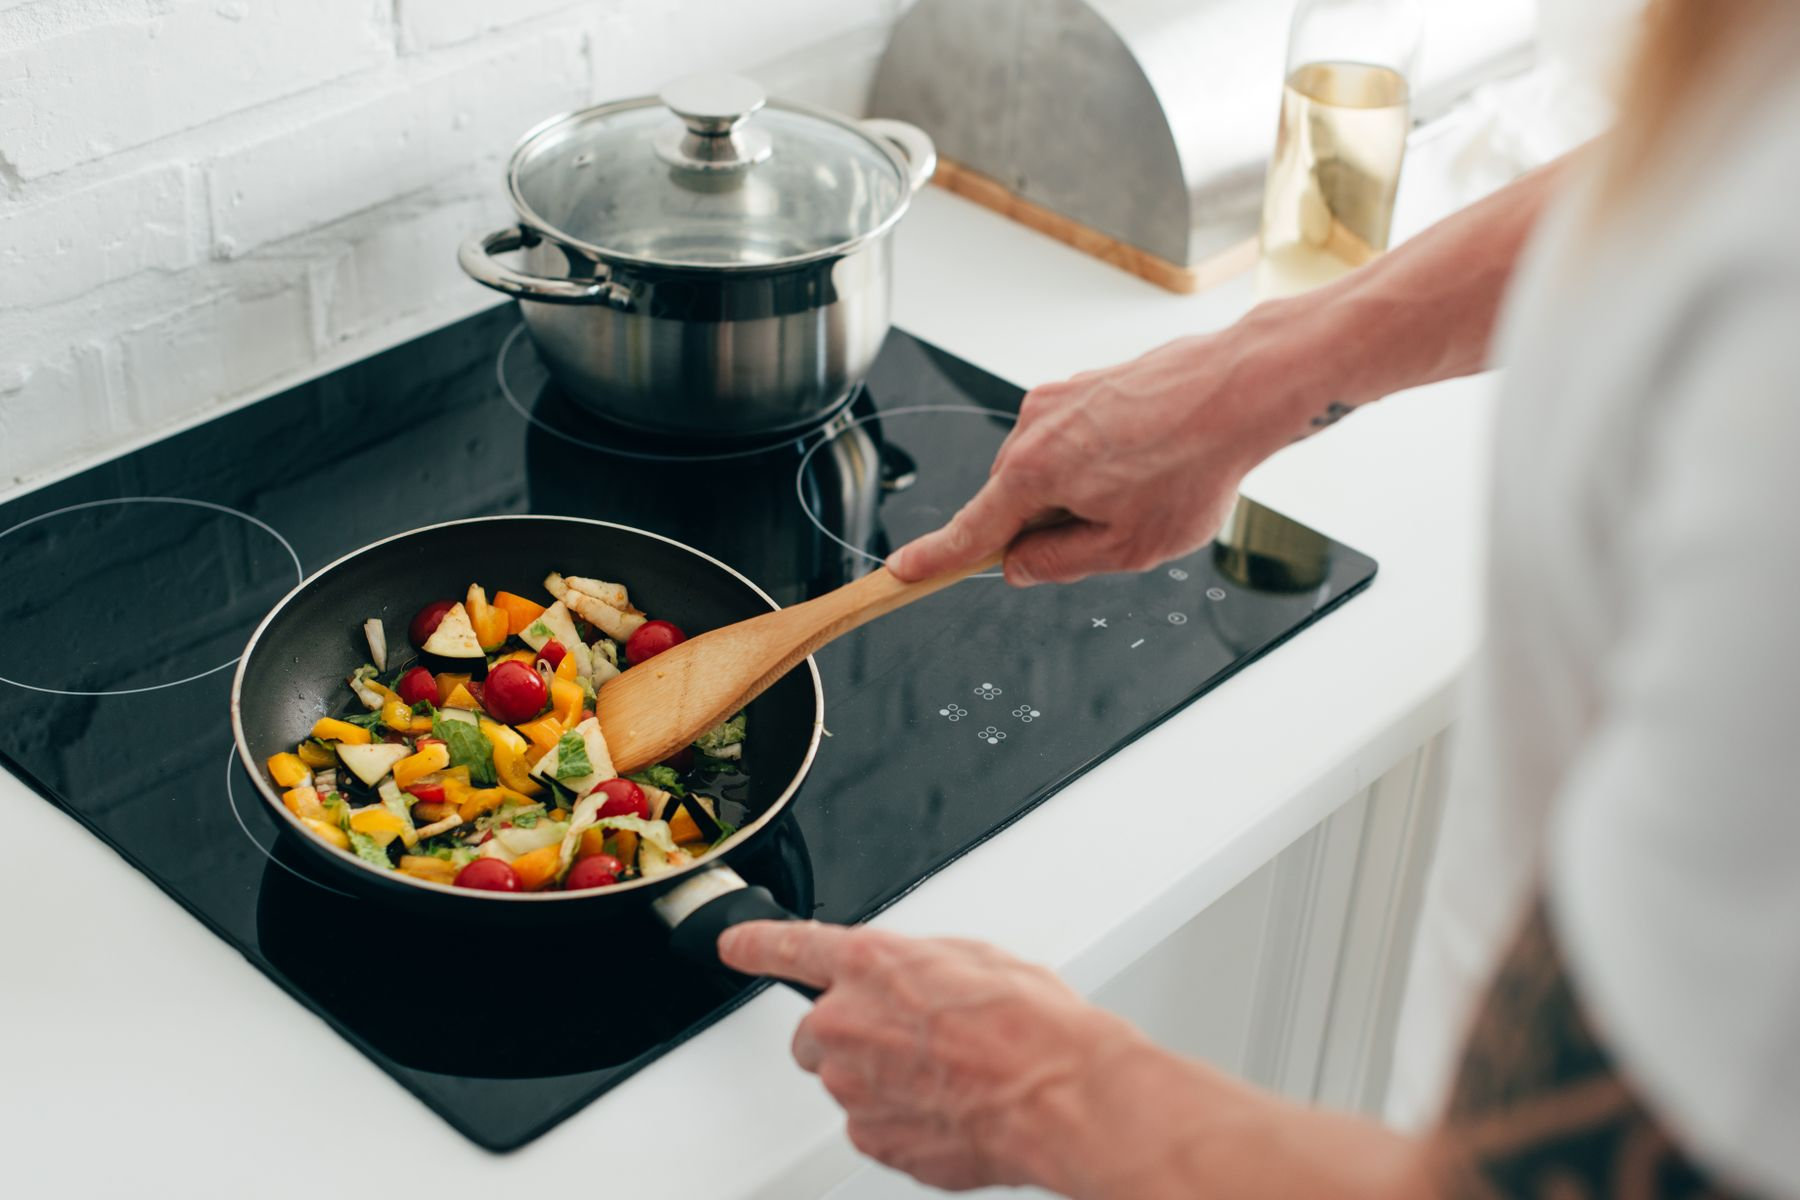 How to Get Your Electric Stove Top Clean and Tidy shutterstock 1090304810